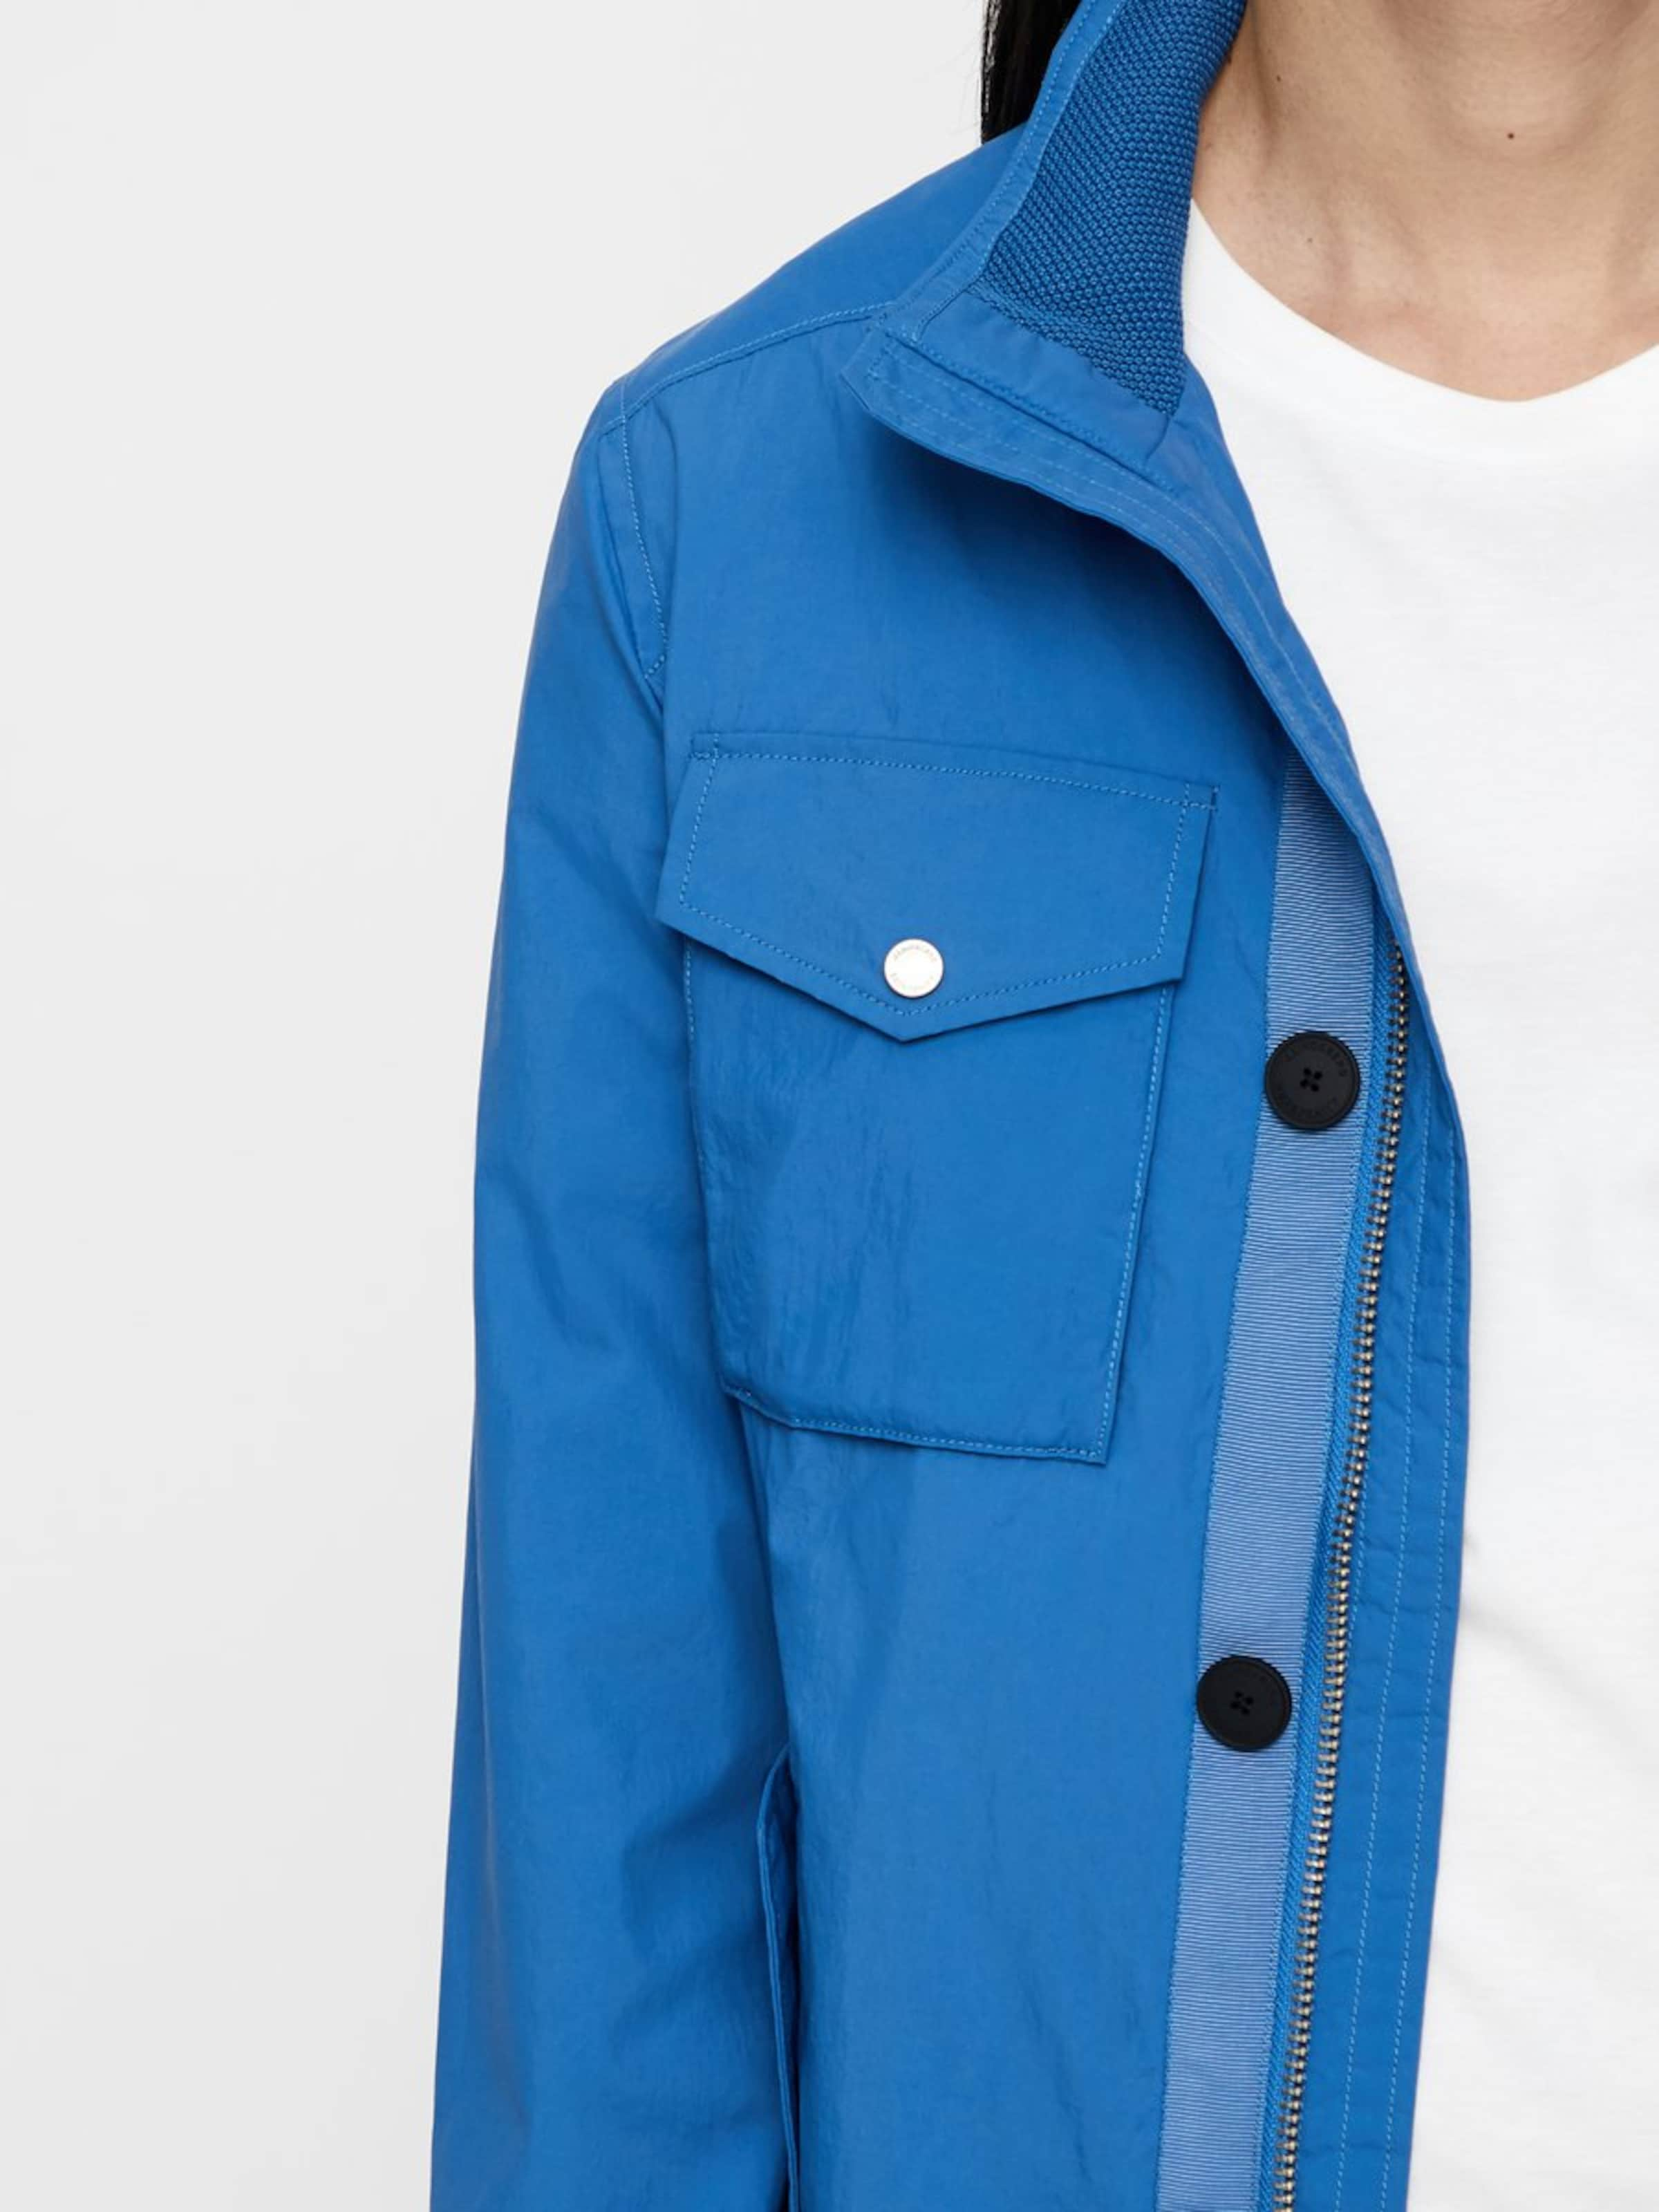 Jacke lindeberg J Tex' Royalblau 'bailey In CQrxtshdB